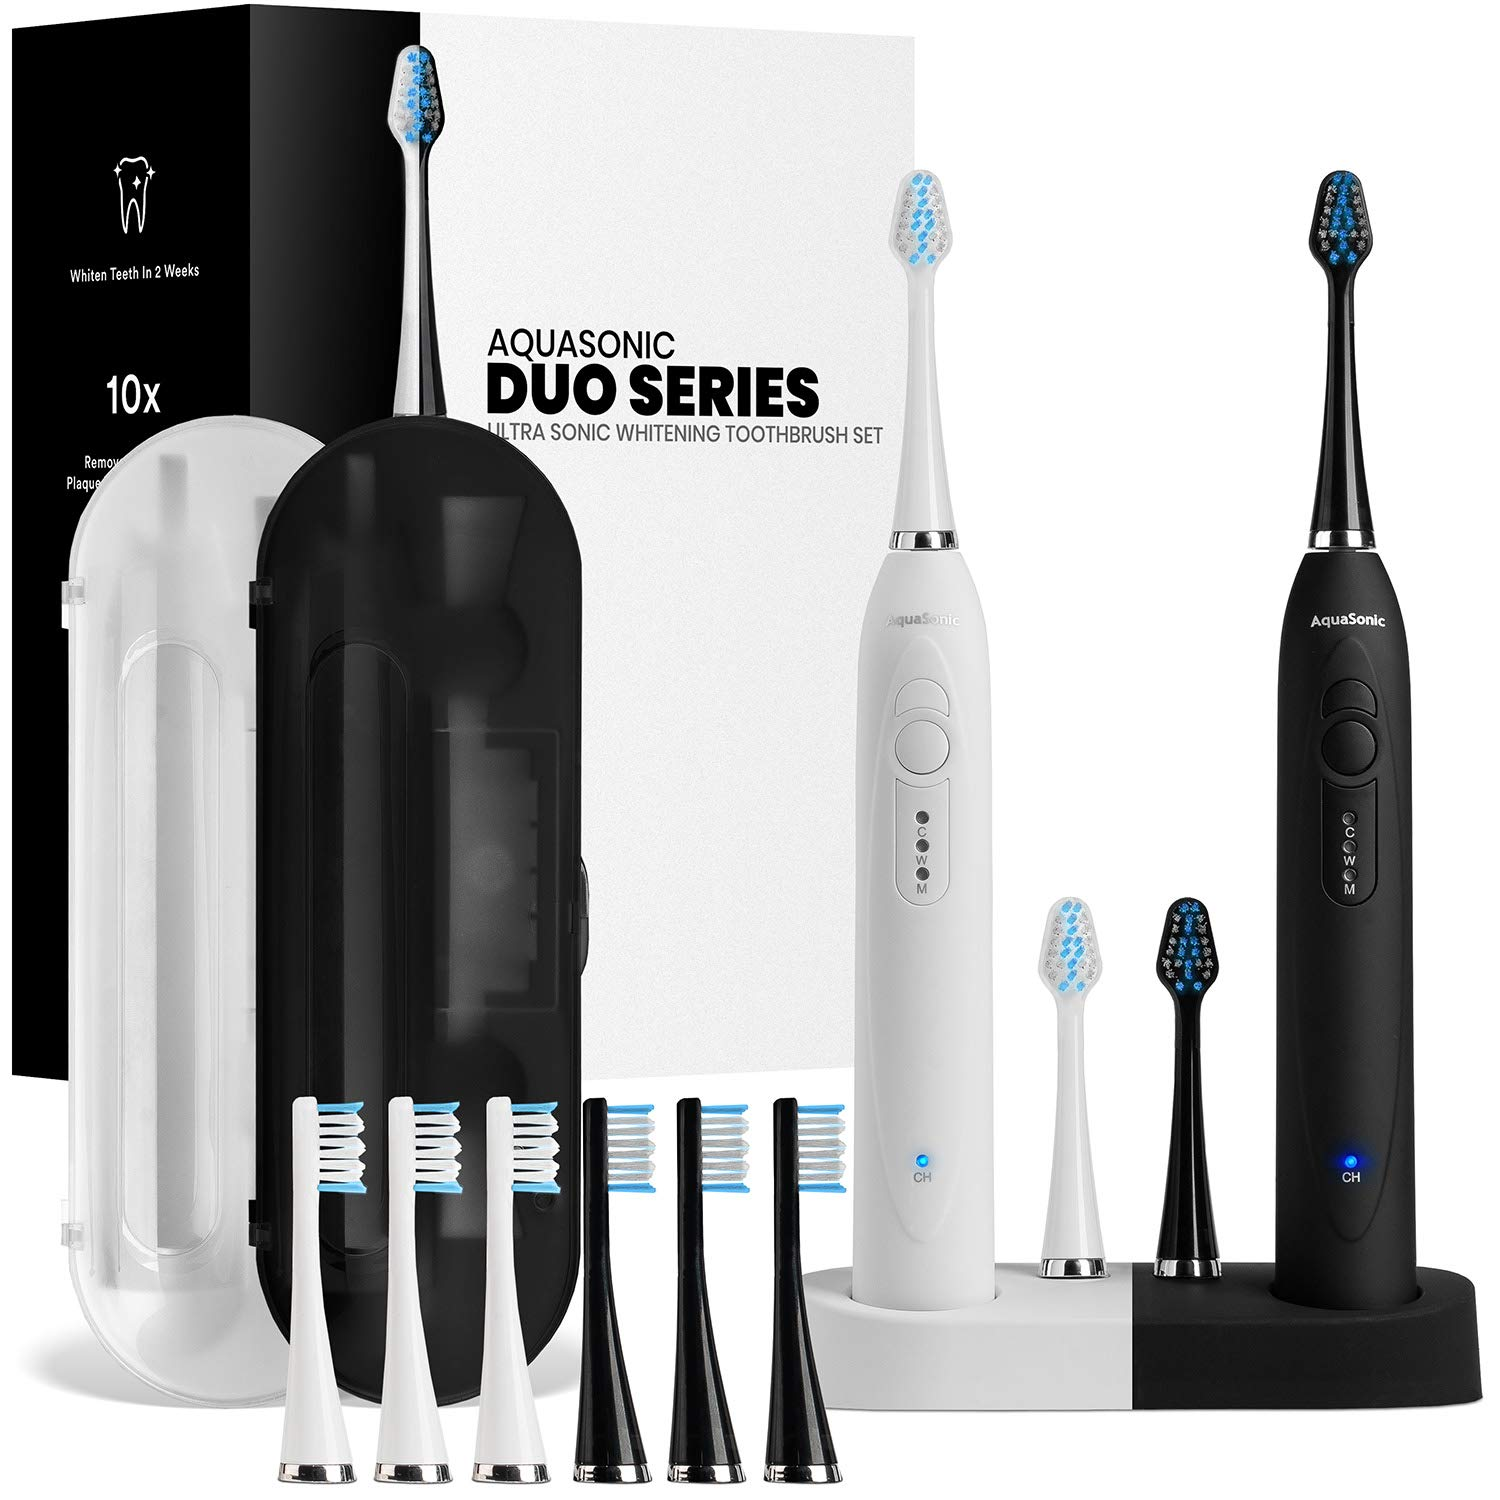 AquaSonic DUO Dual Handle Ultra Whitening 40,000 VPM Wireless Charging Electric ToothBrushes - 3 Modes with Smart Timers - 10 DuPont Brush Heads & 2 Travel Cases Included by Aquasonic